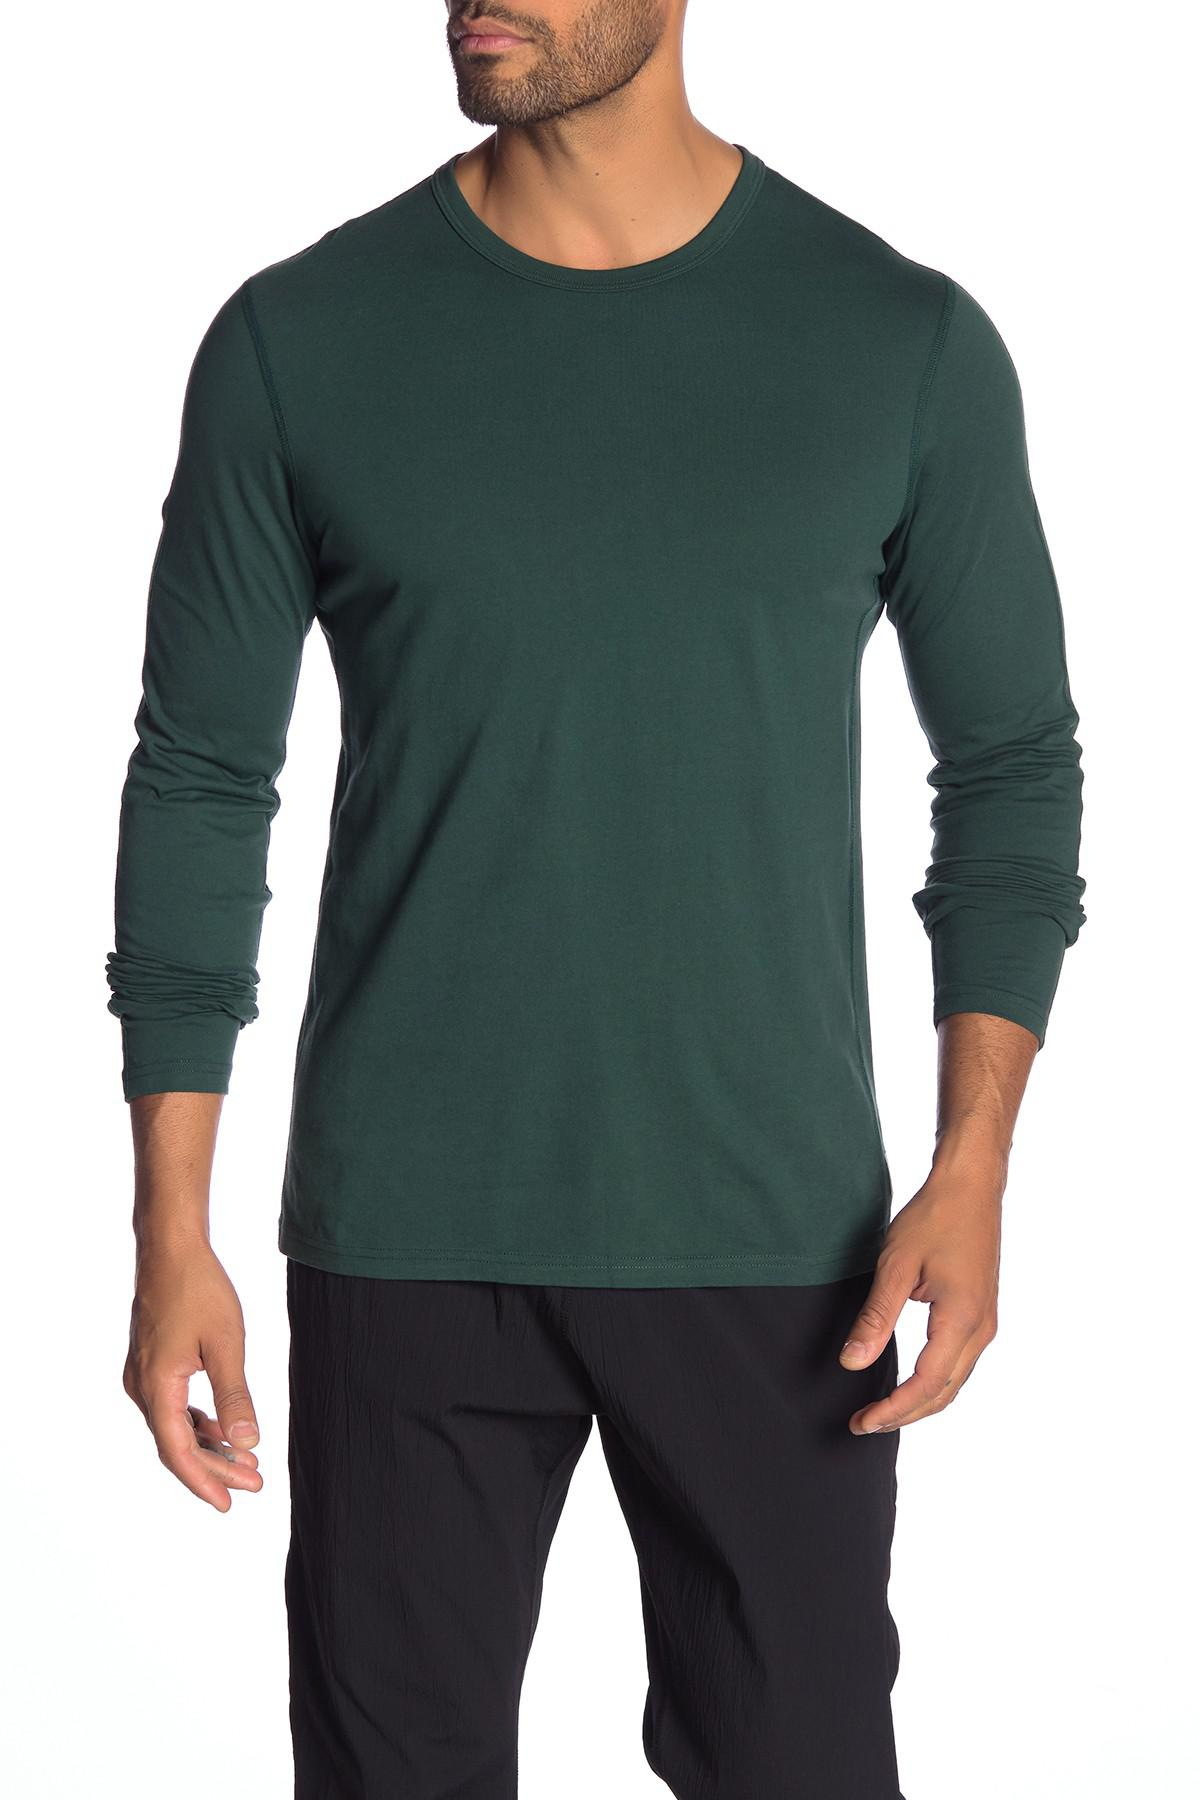 247bf58c0 Lyst - Reigning Champ Crew Neck Long Sleeve Tee in Green for Men